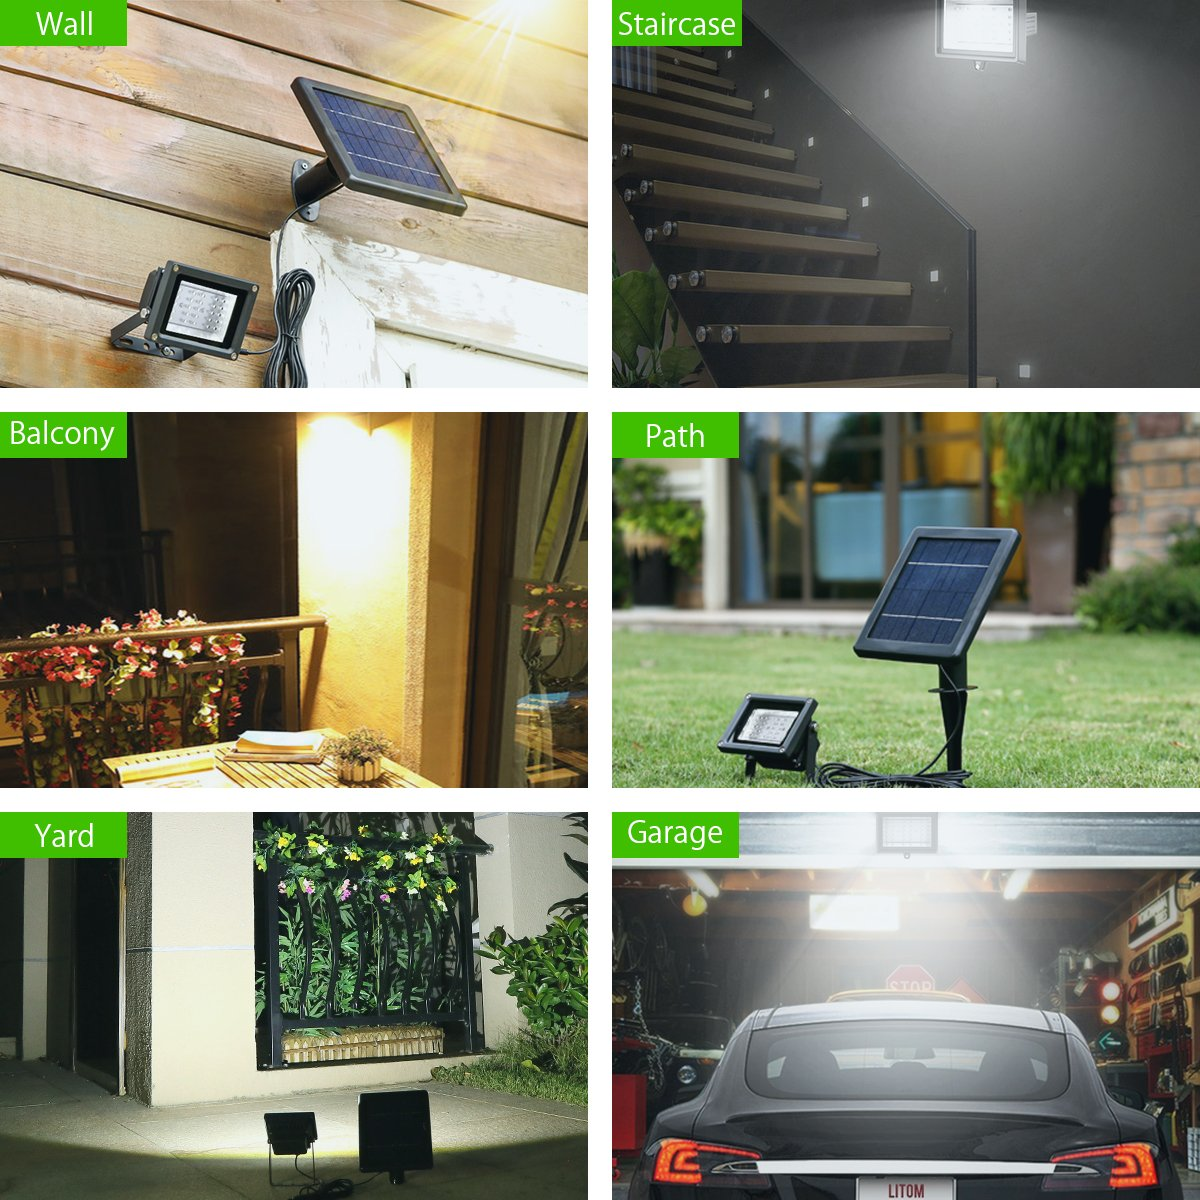 Solar Lights, Poweradd 30 LED Waterproof Wireless Solar Flood Outdoor Landscape Light for Path, Road, Garden, Yard, Patio